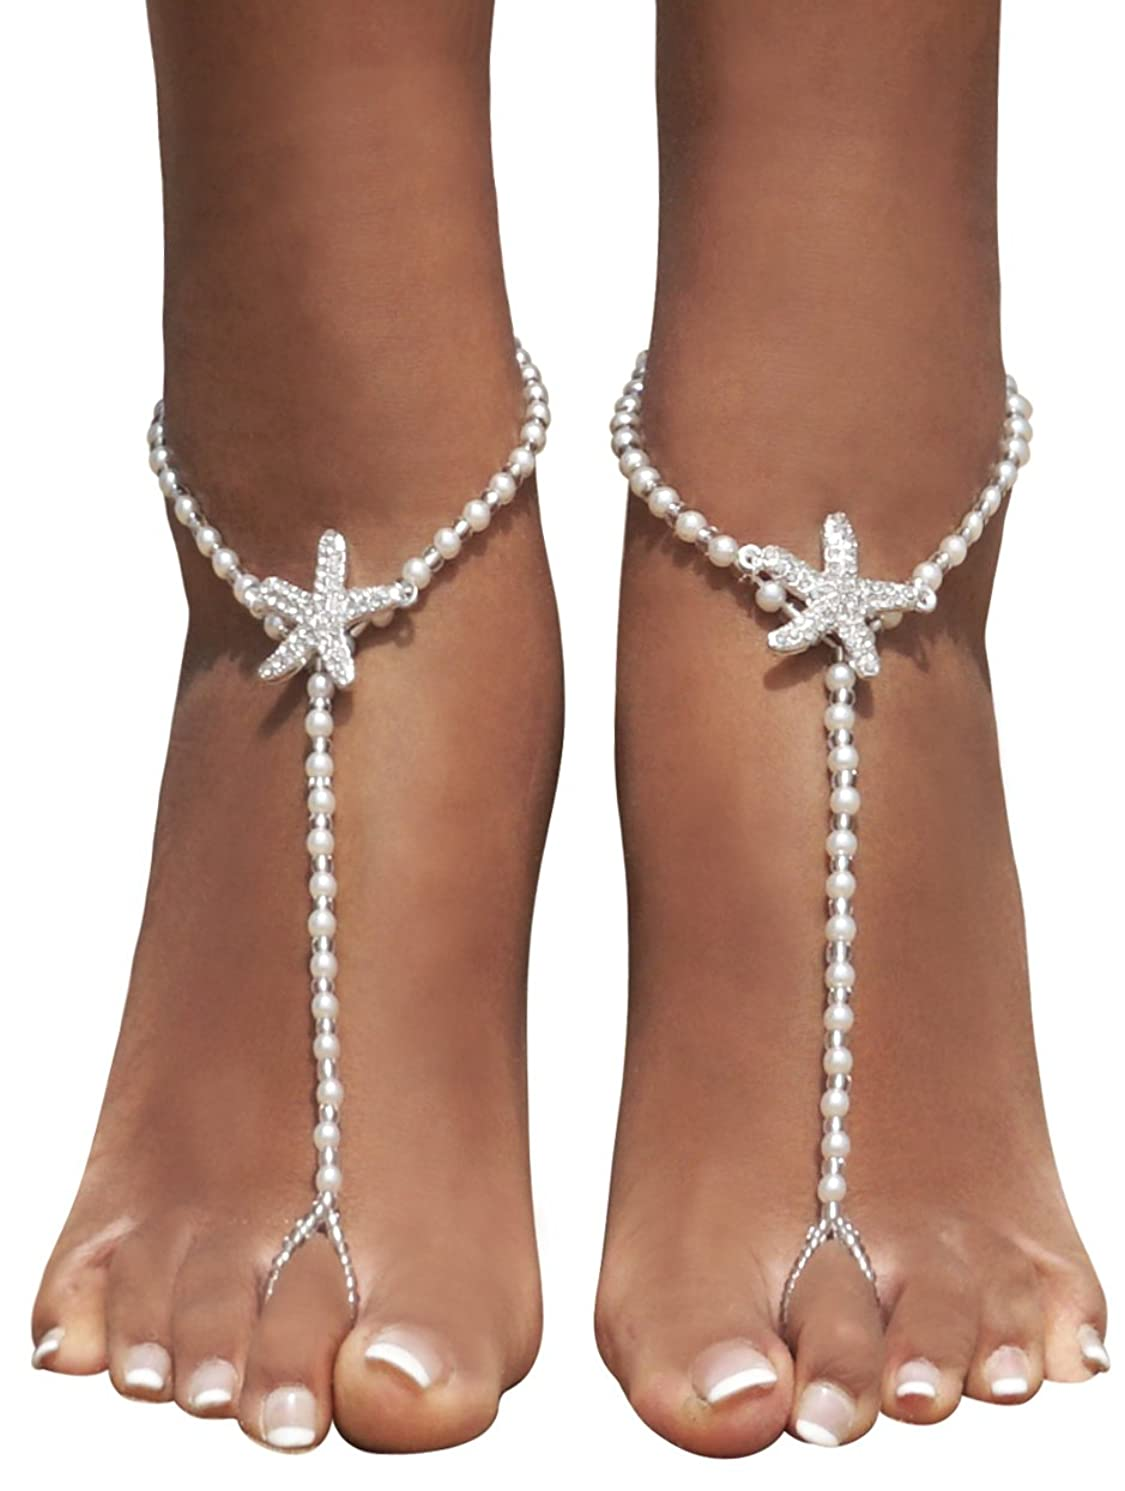 Bienvenu 2pcs Pearl Ankle Chain Bracelet Beach Wedding Foot Jewelry Barefoot Sandal Anklet Chain